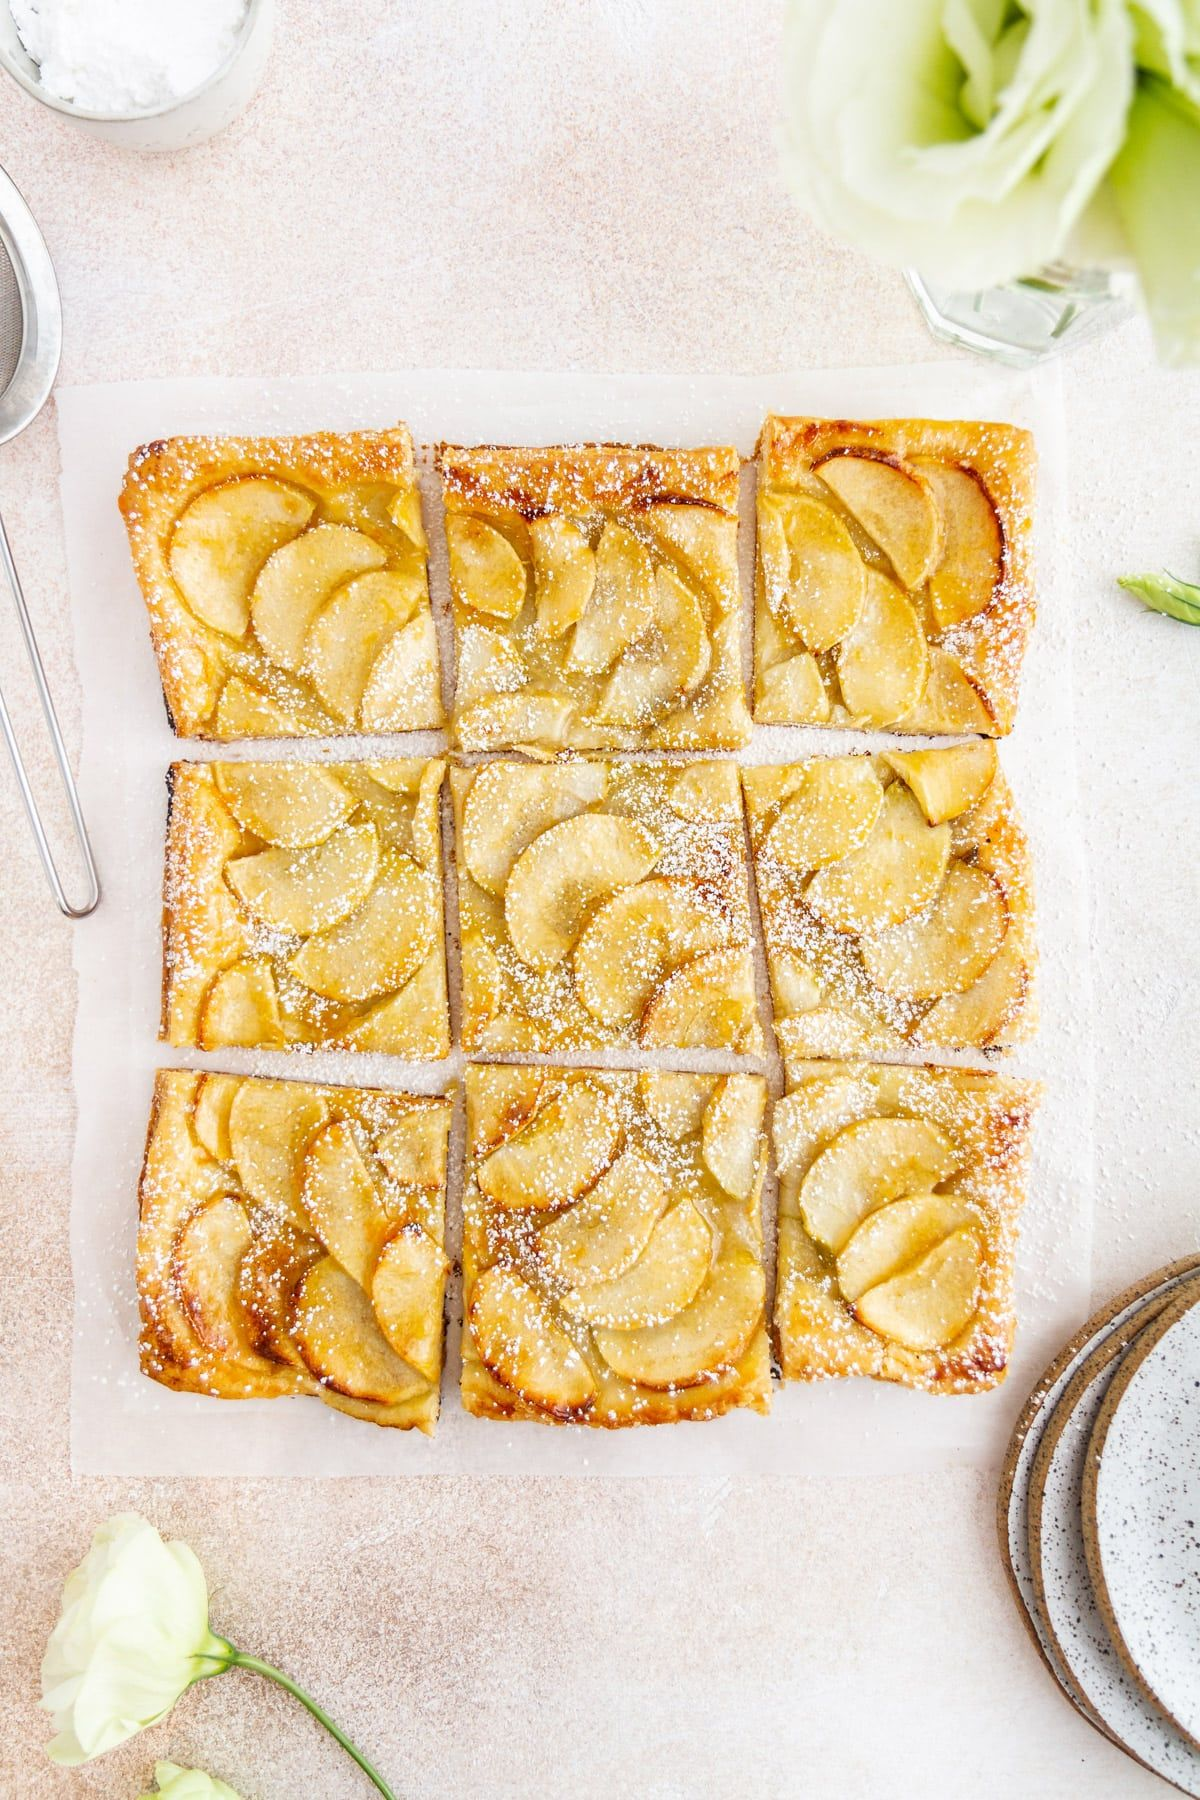 Easy French Apple Tart Recipe | Girl Versus Dough